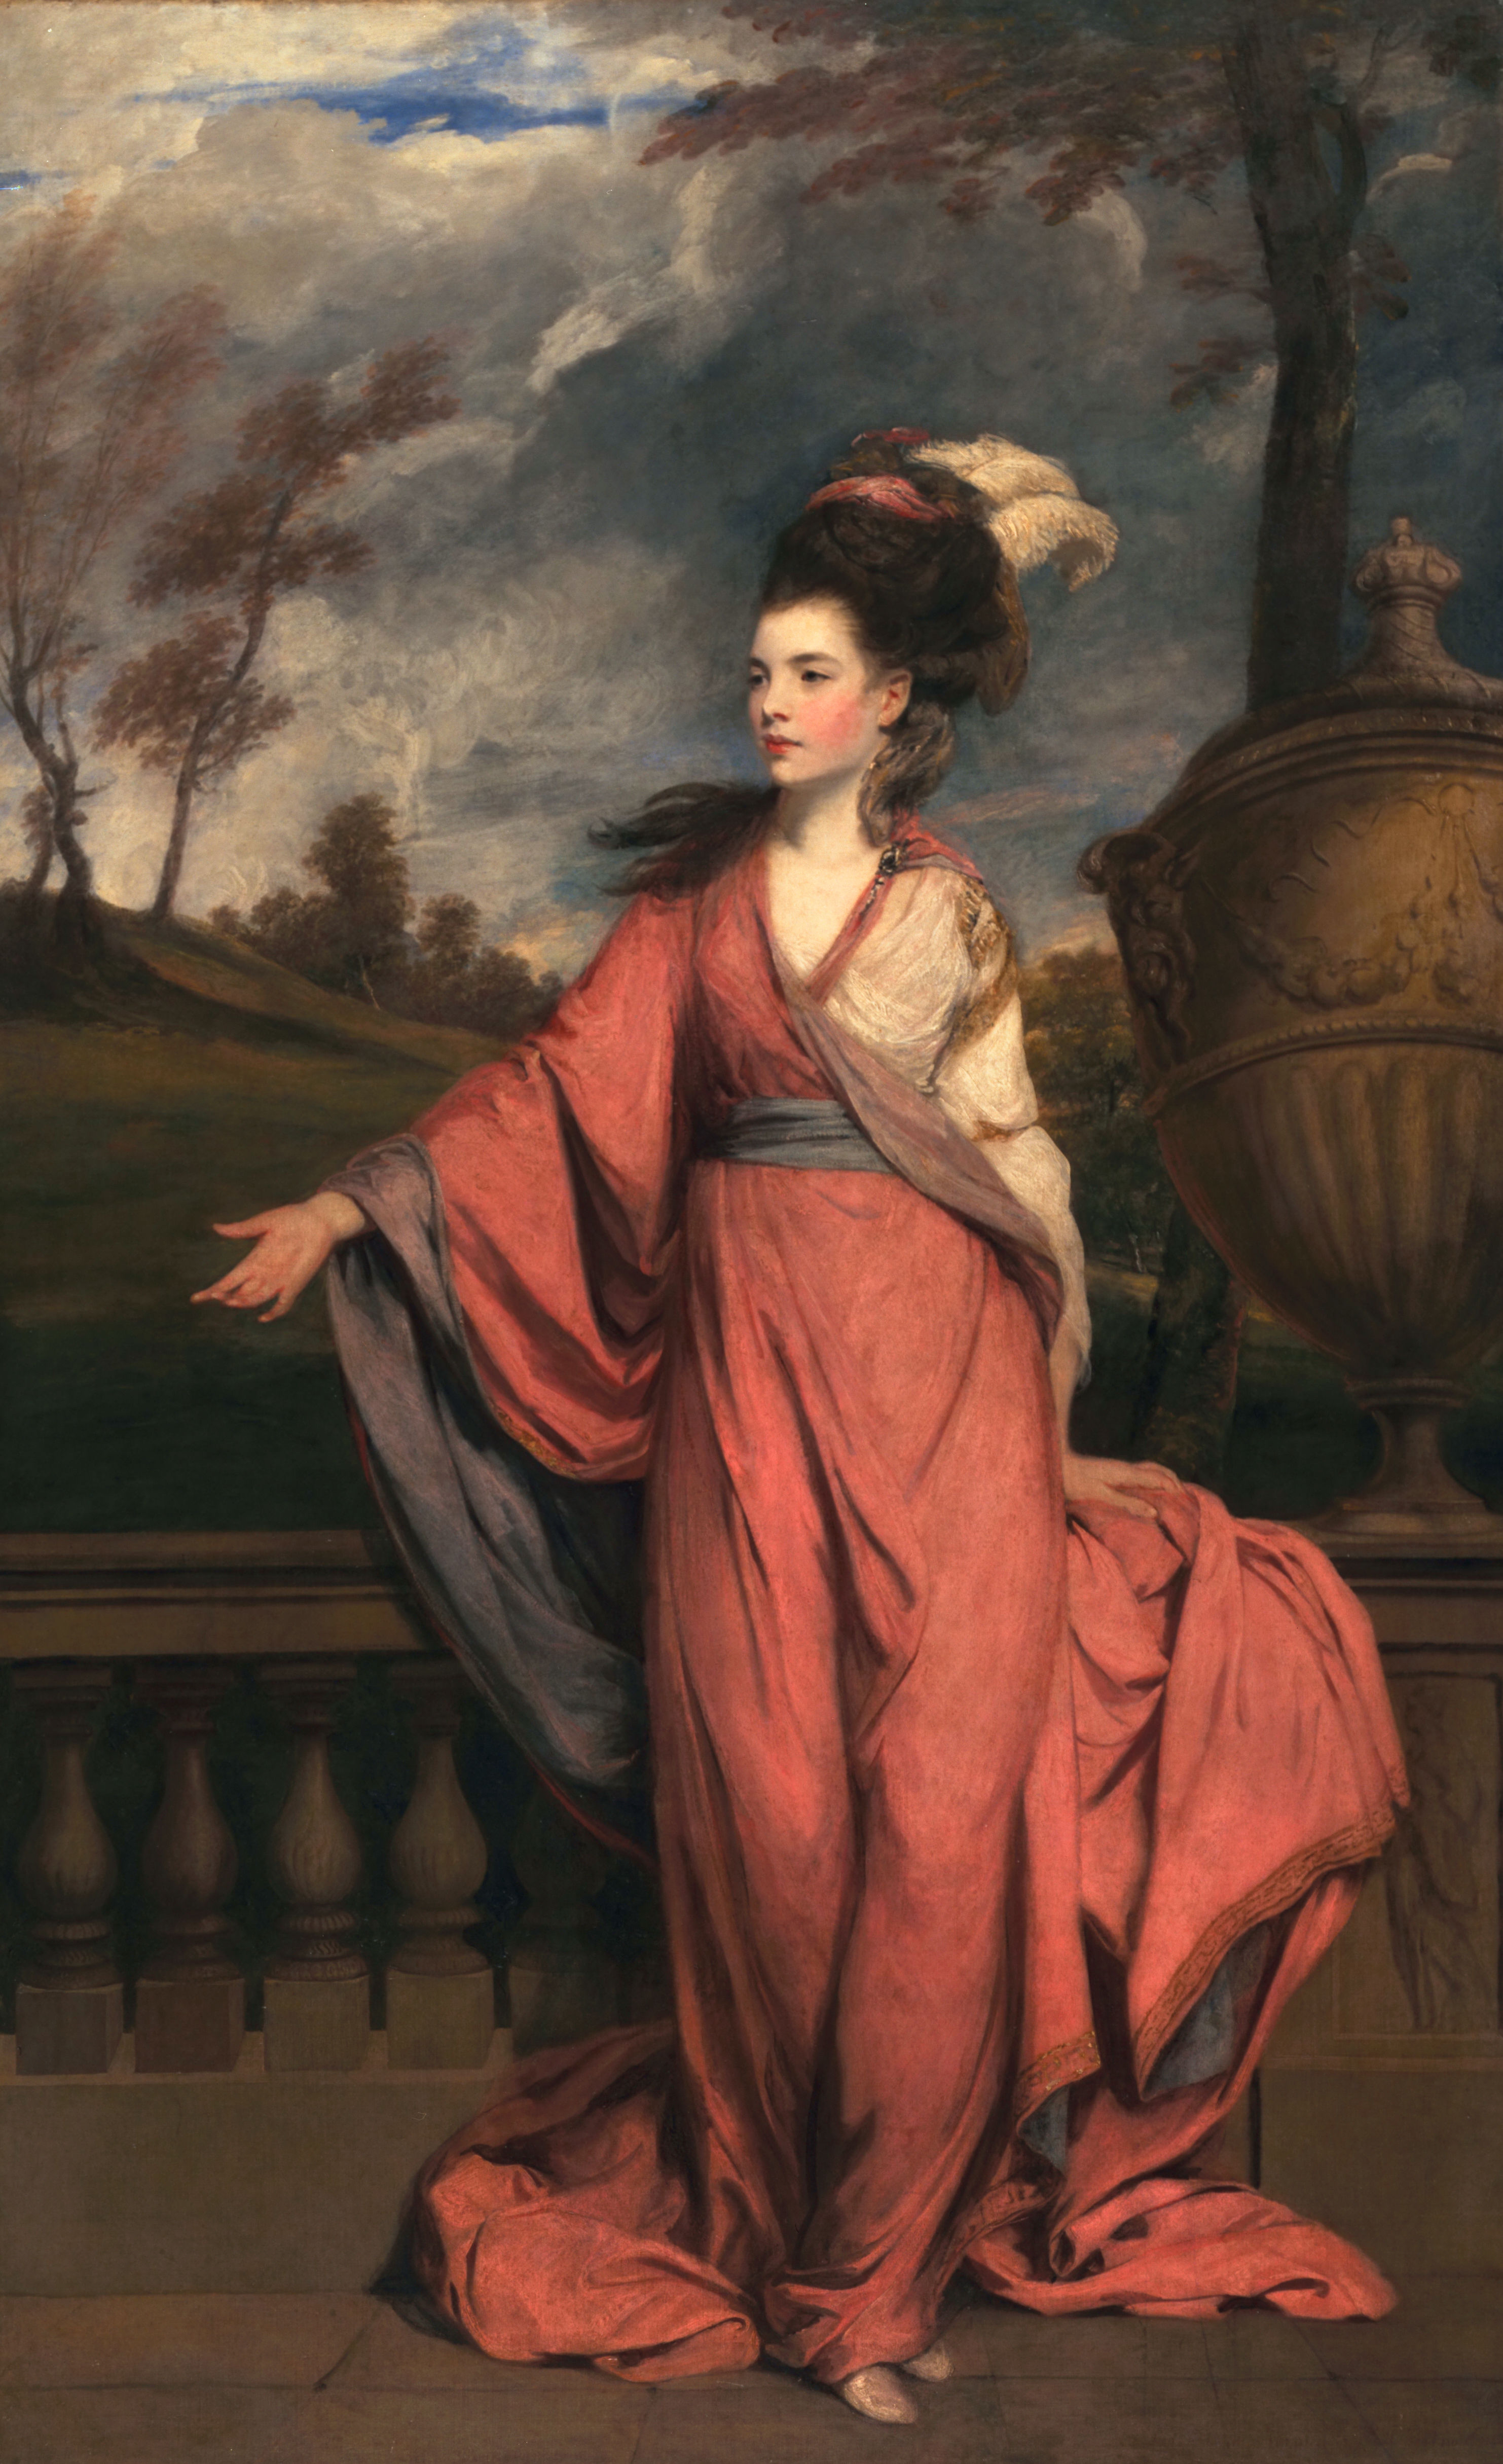 San Marino, Hunthington Art Collections_Sir Joshua Reynolds, Jane Fleming, later Countess of Harrington